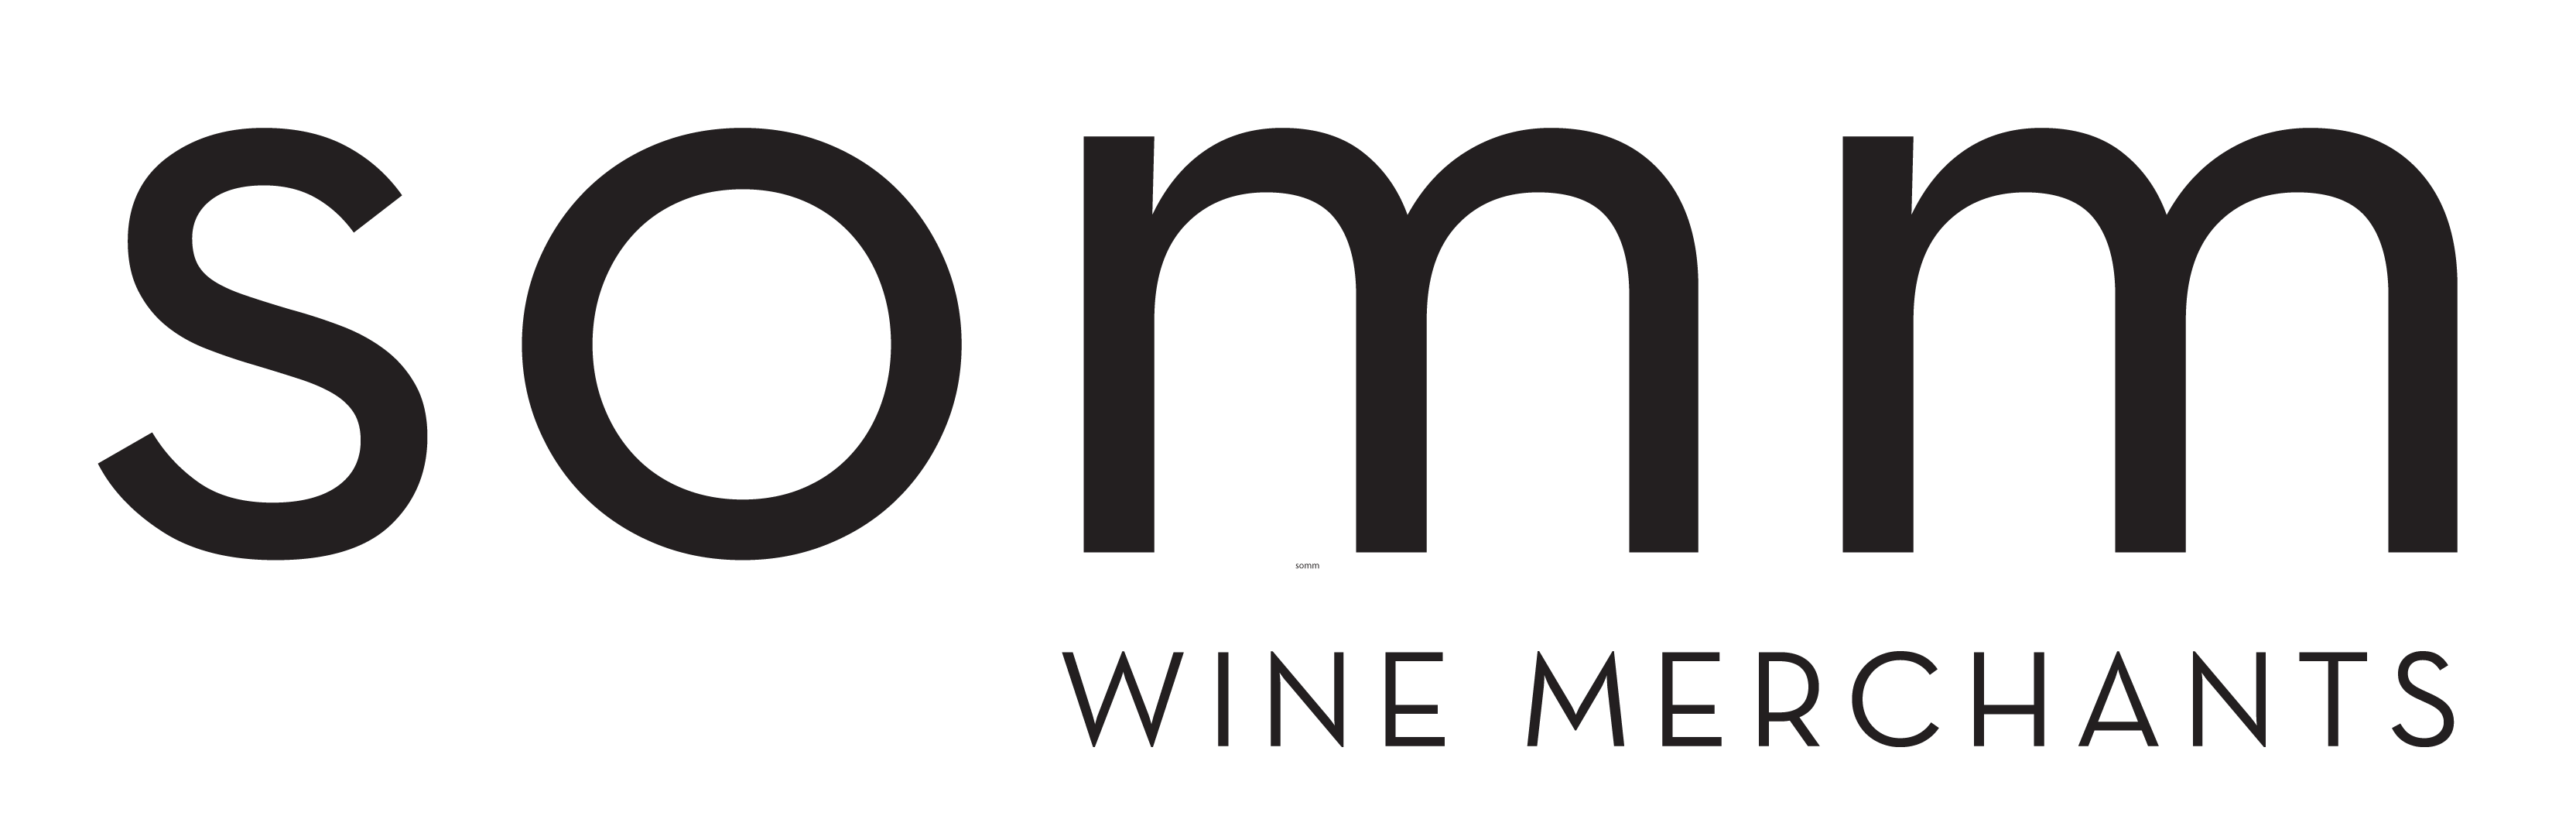 Somm Wine Merchants